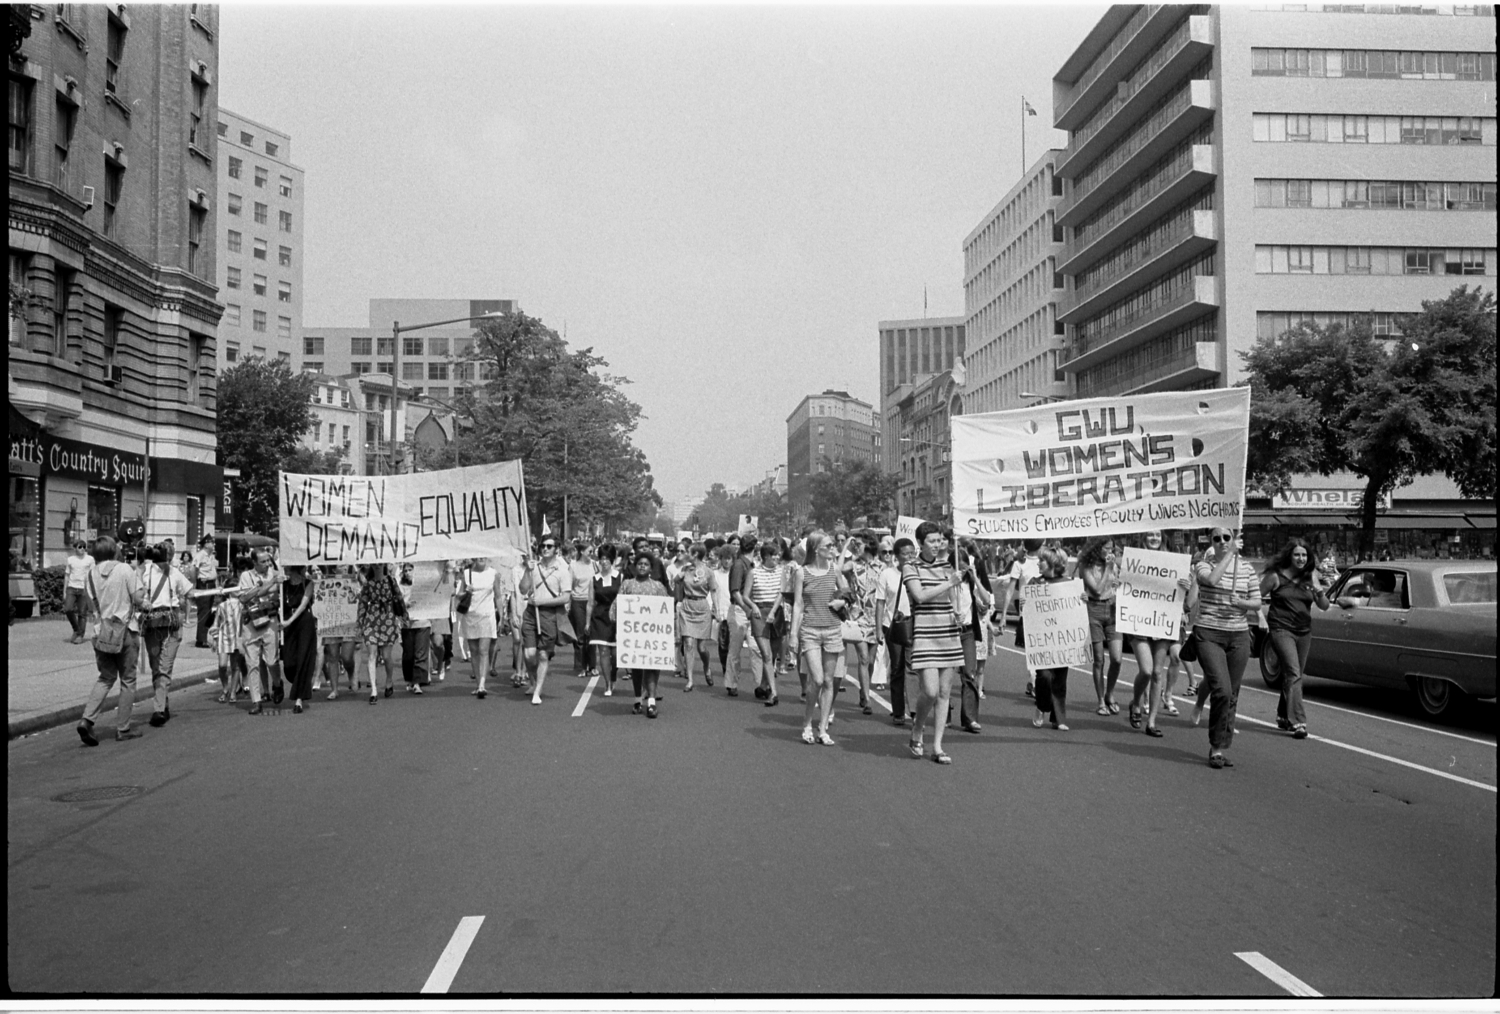 Image of a women's liberation protest by Warren K. Leffler